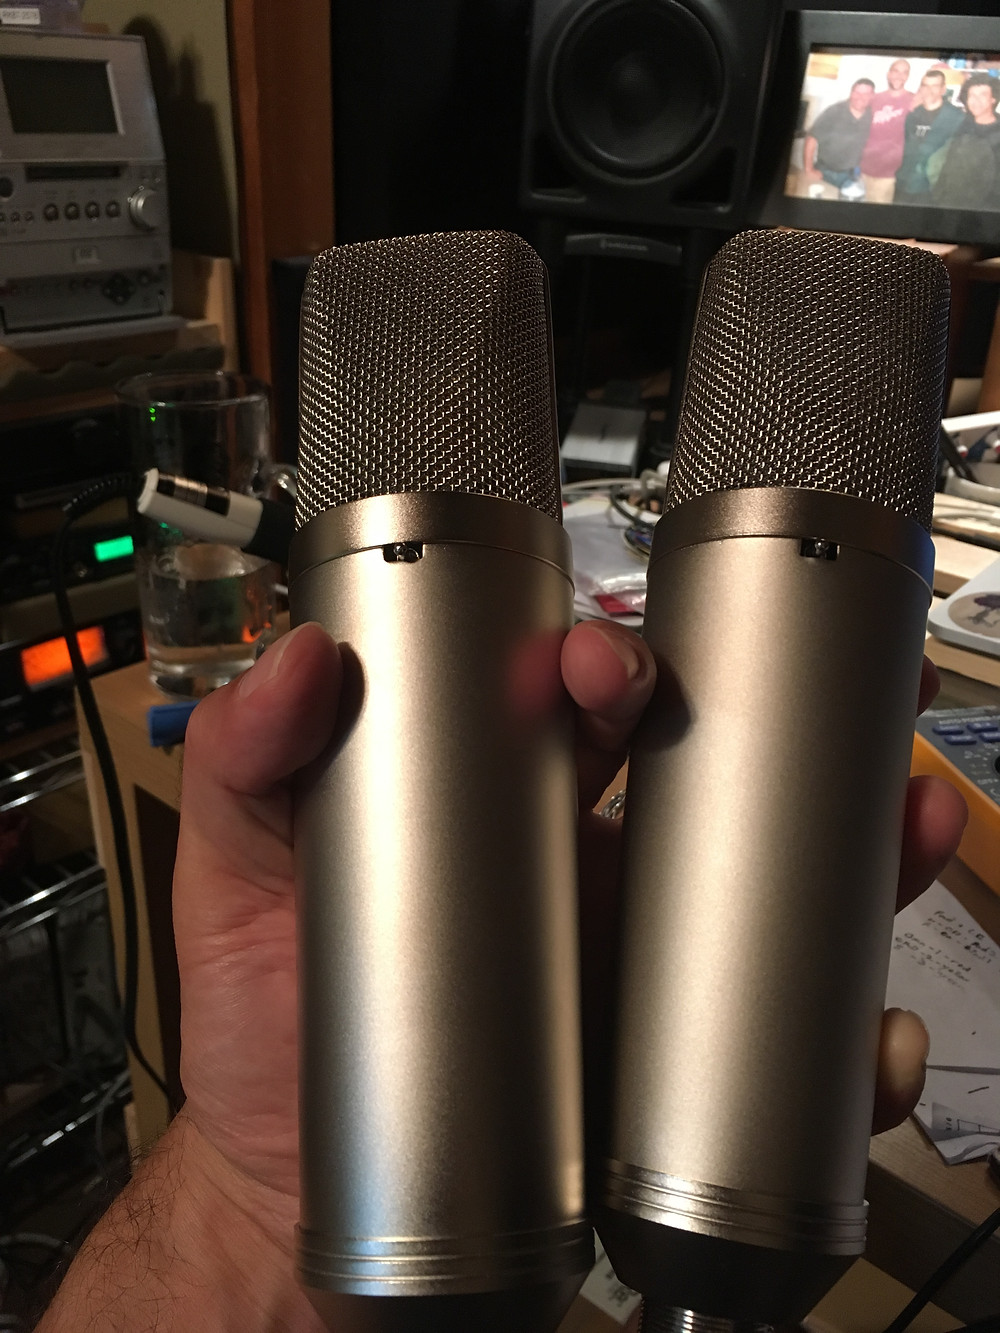 CE87 (U87 clone mics by Clear Echo) matched stereo pair.